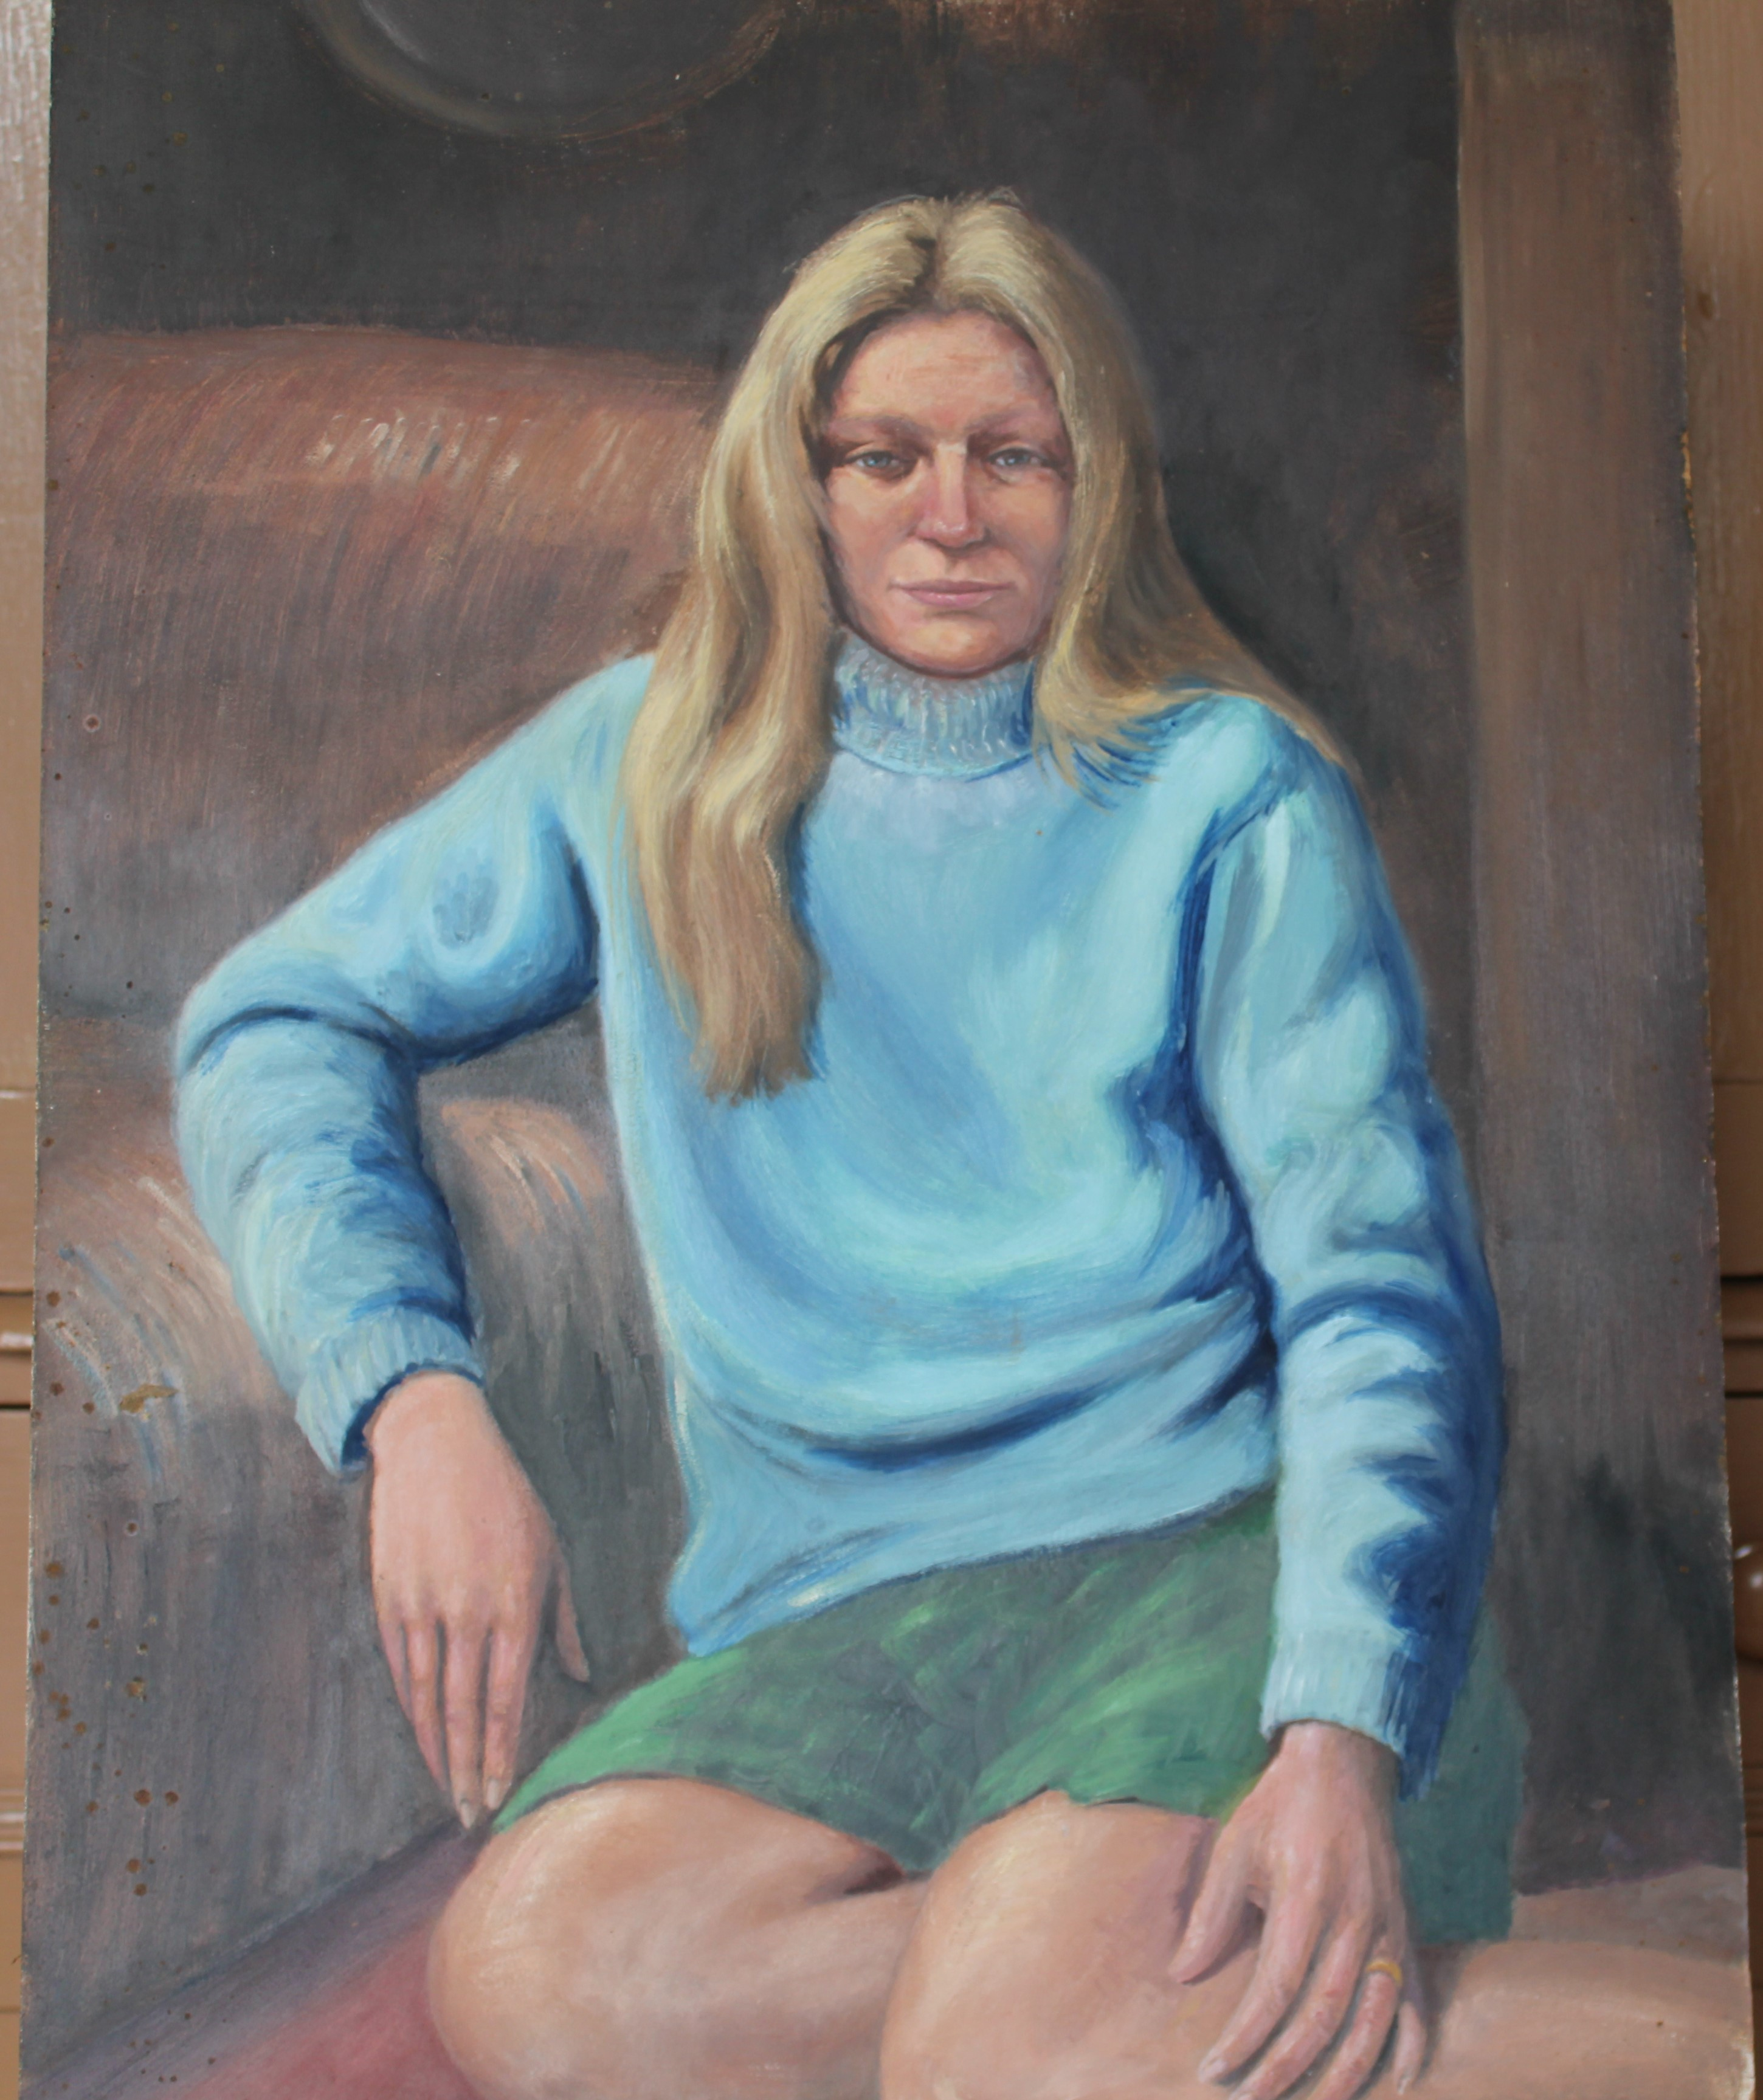 •PORTRAIT OF A WOMAN WEARING A BLUE TOP Unsigned unframed oil on board, 50 x 40.5cm and a collection - Image 9 of 9